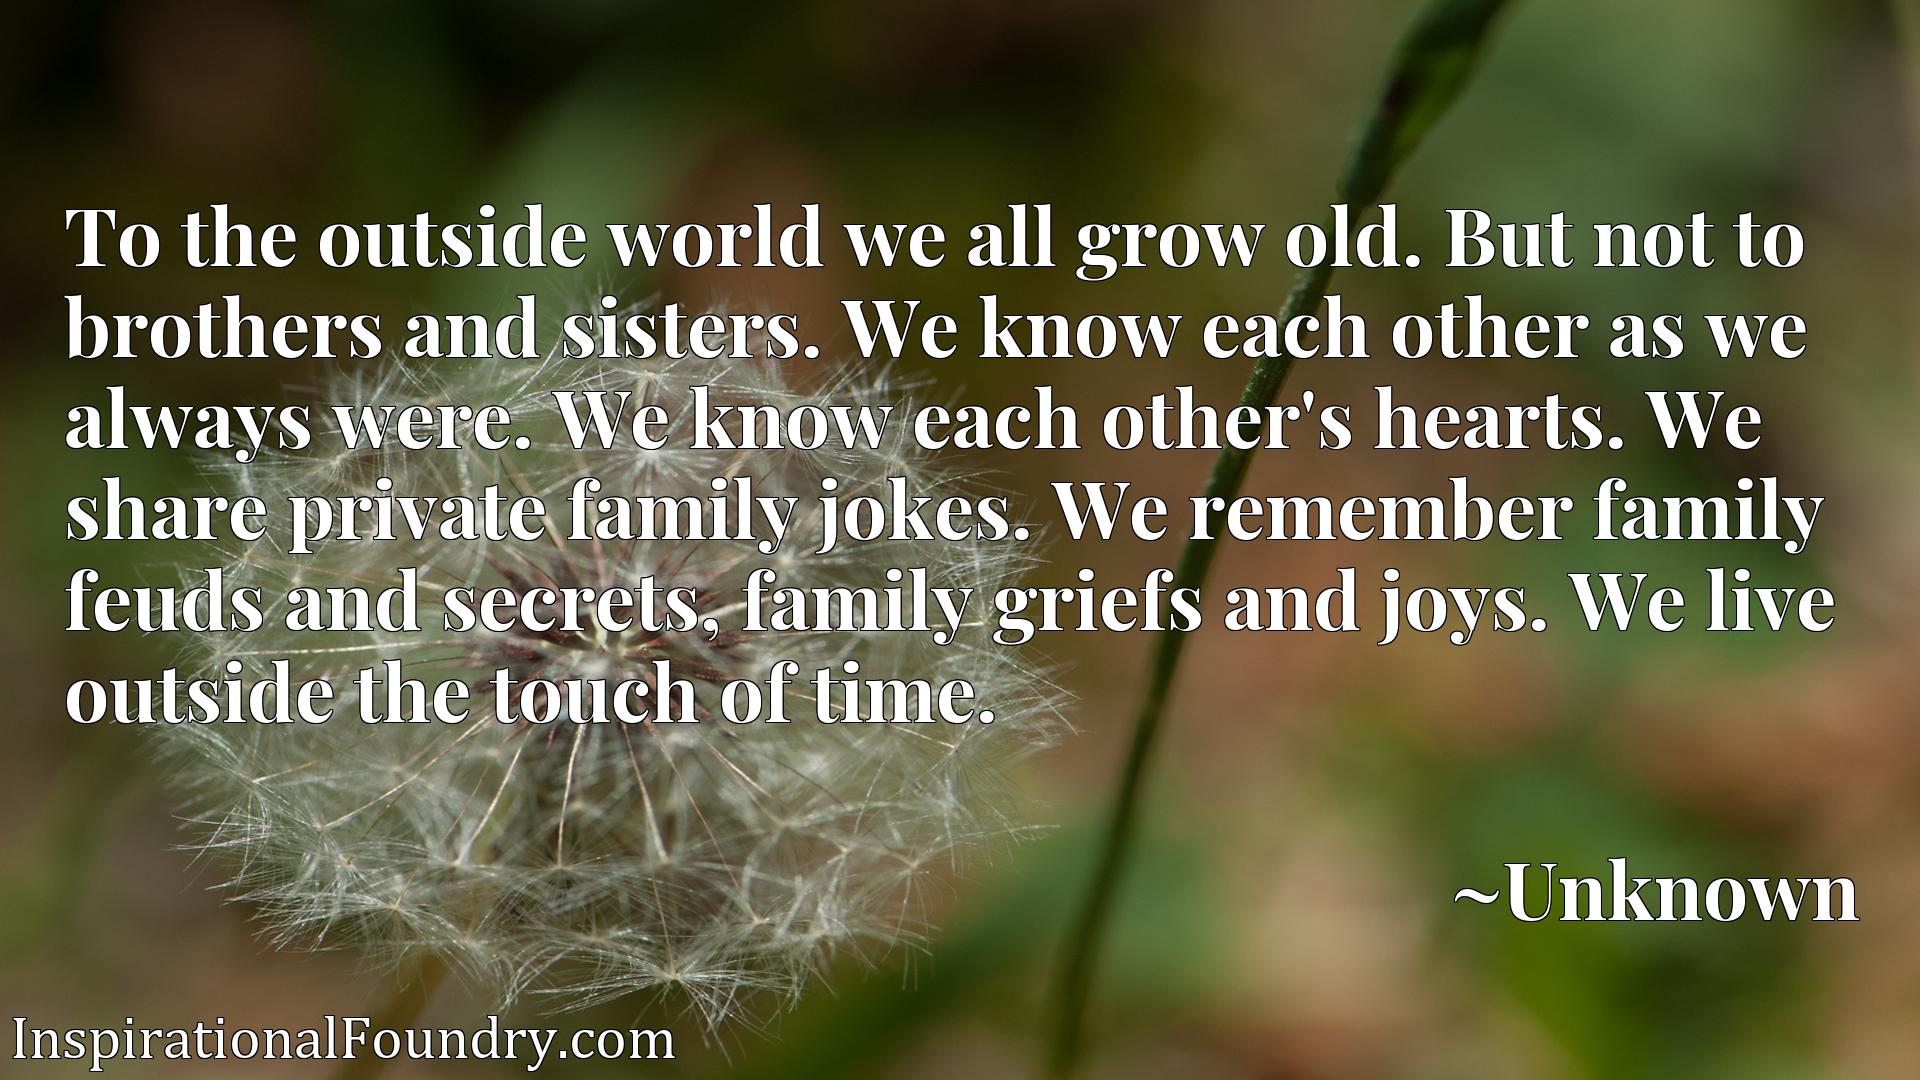 To the outside world we all grow old. But not to brothers and sisters. We know each other as we always were. We know each other's hearts. We share private family jokes. We remember family feuds and secrets, family griefs and joys. We live outside the touch of time.